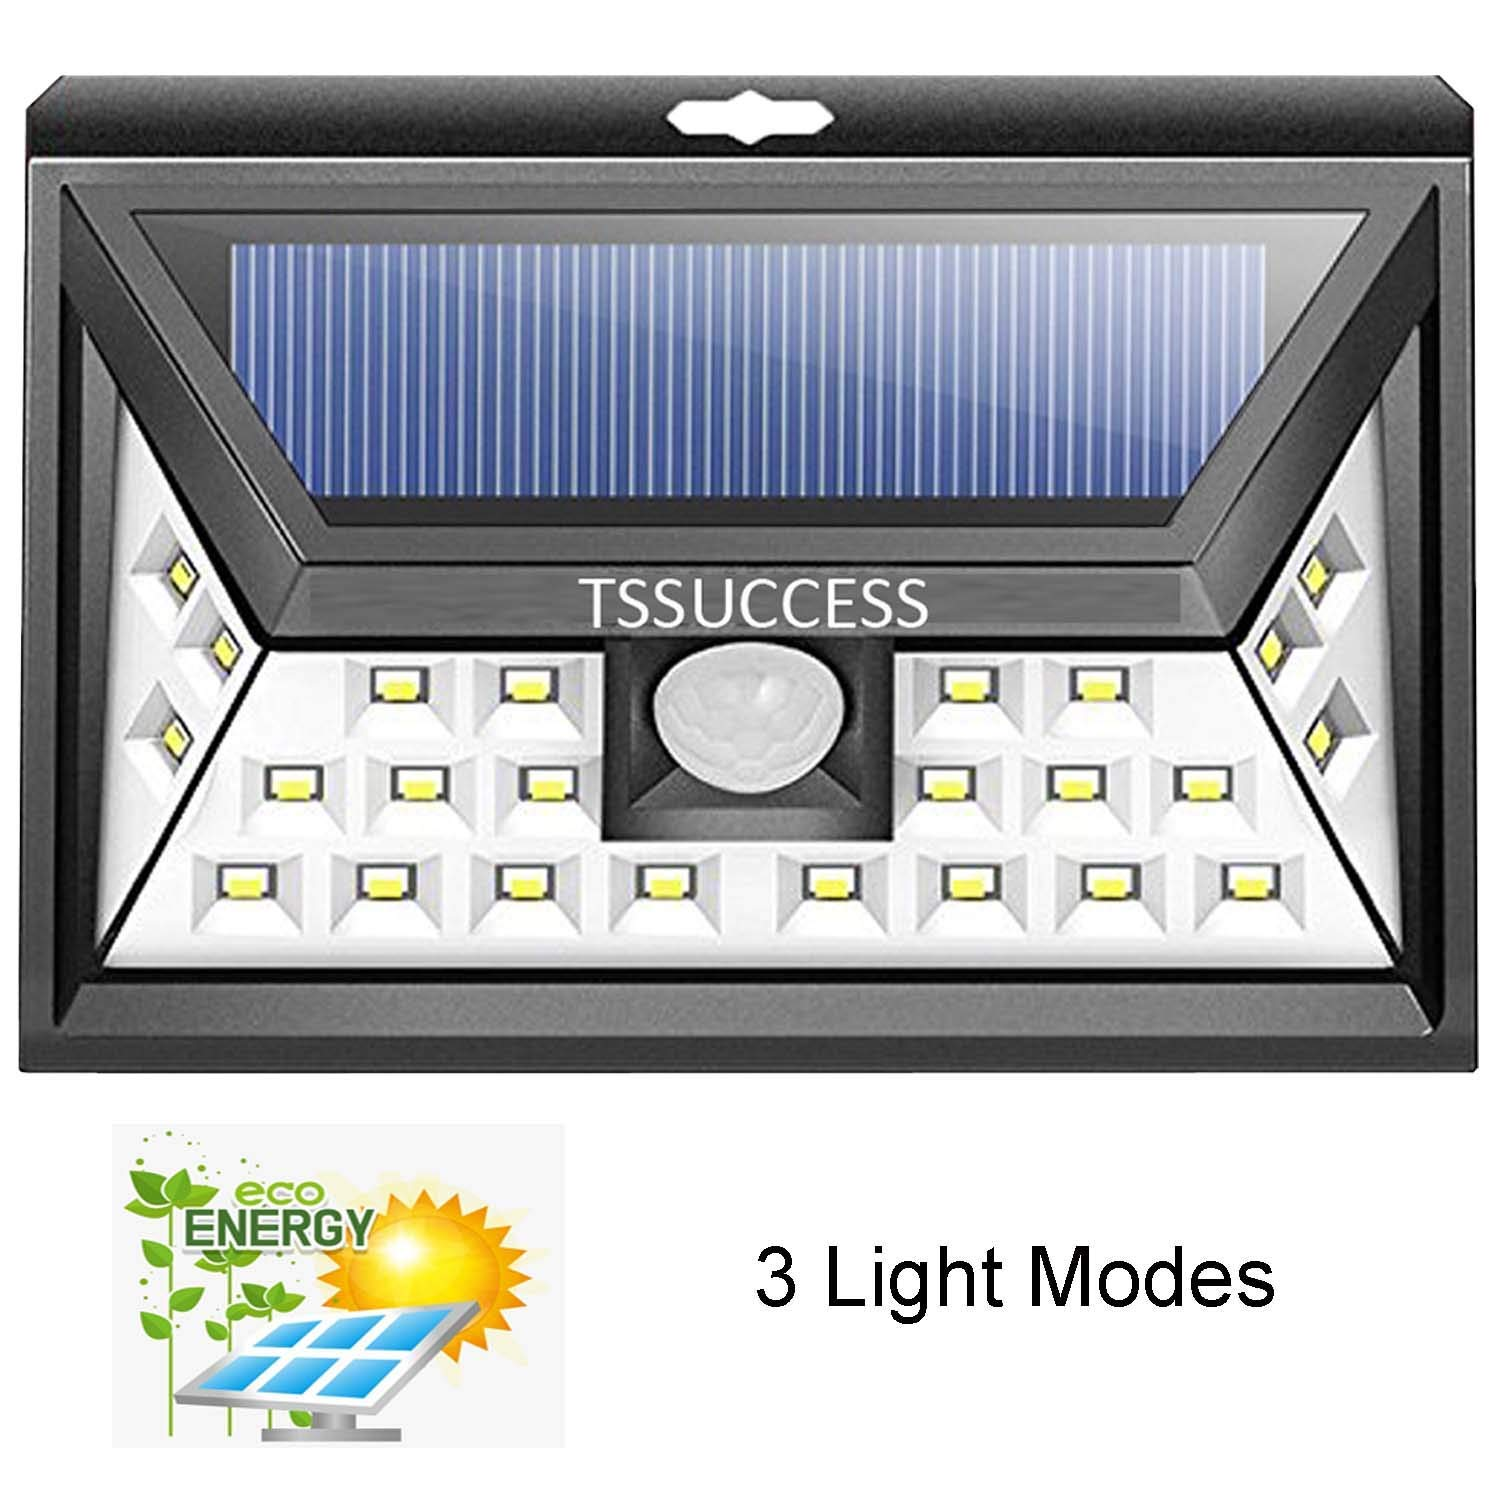 Solar Lights Outdoor - Solar Motion Sensor Light - Wall Light 24 LED - Wireless Waterproof Solar Powered LED Lights Outdoor with Wide Angle Illumination - Night Security LED Patio Lights